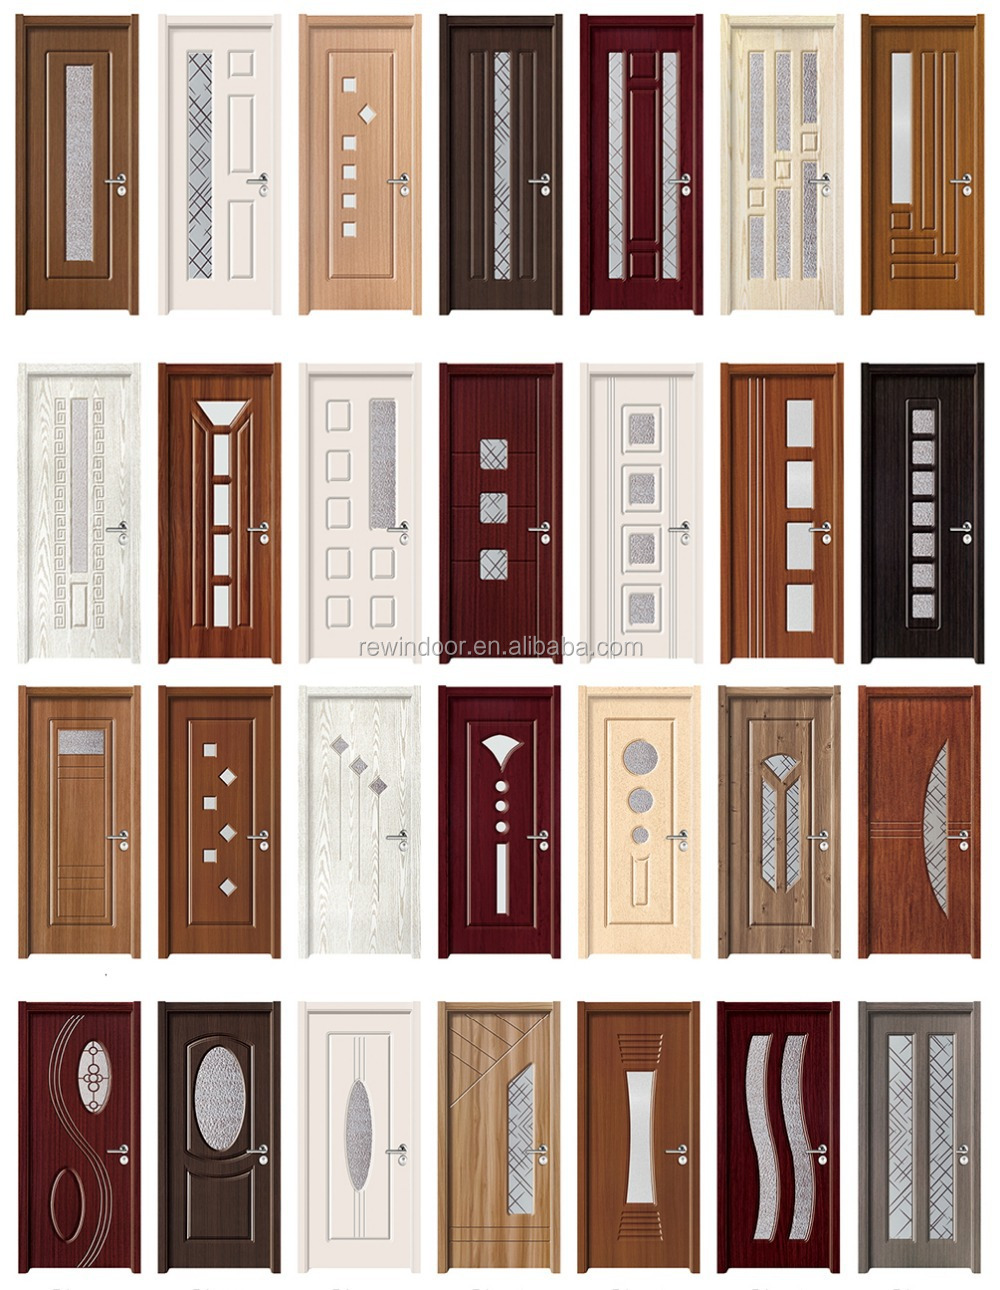 Bathroom pvc doors prices fiber bathroom door teak wood Main door wooden design